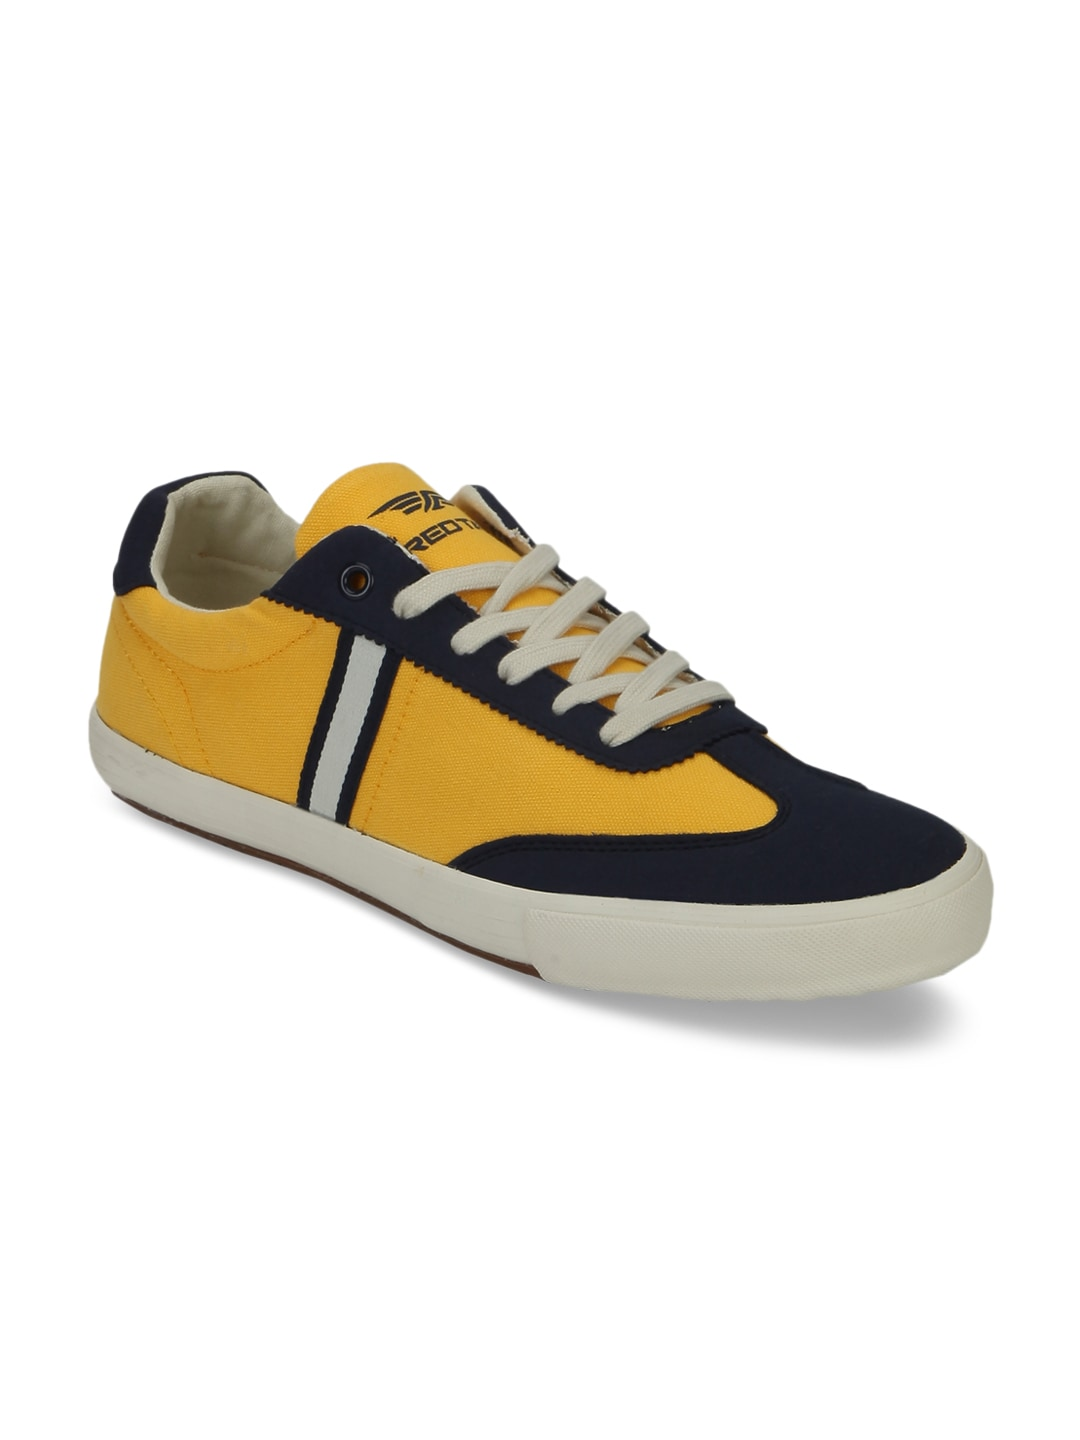 Red Tape Men Yellow & Navy Sneakers image